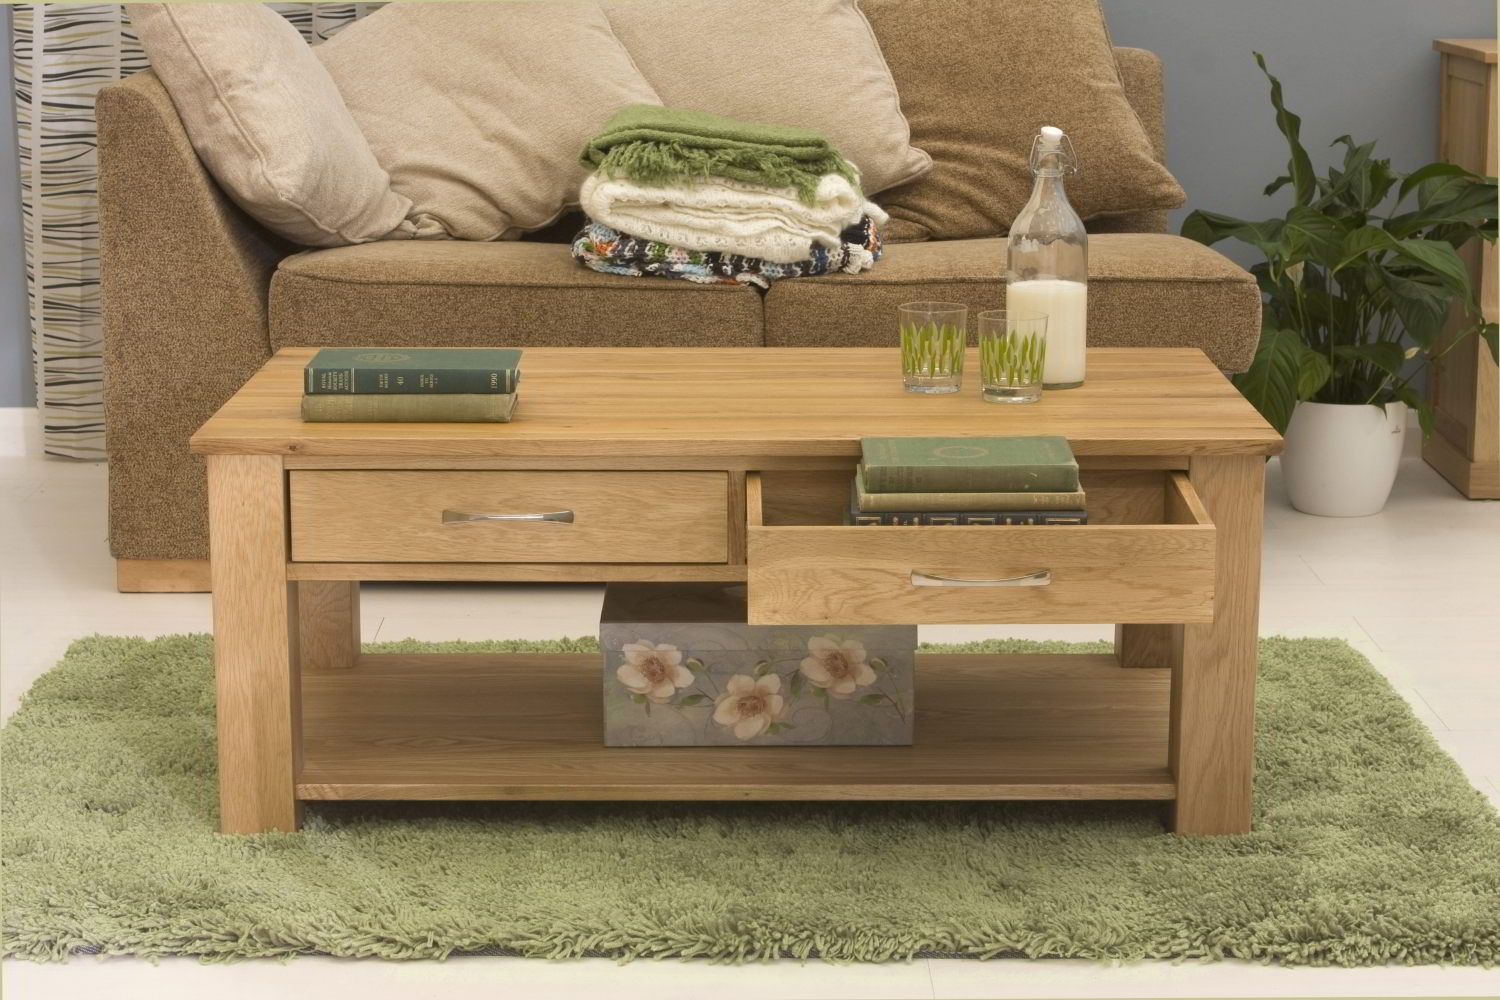 conran solid oak living room lounge furniture four drawer storage coffee table